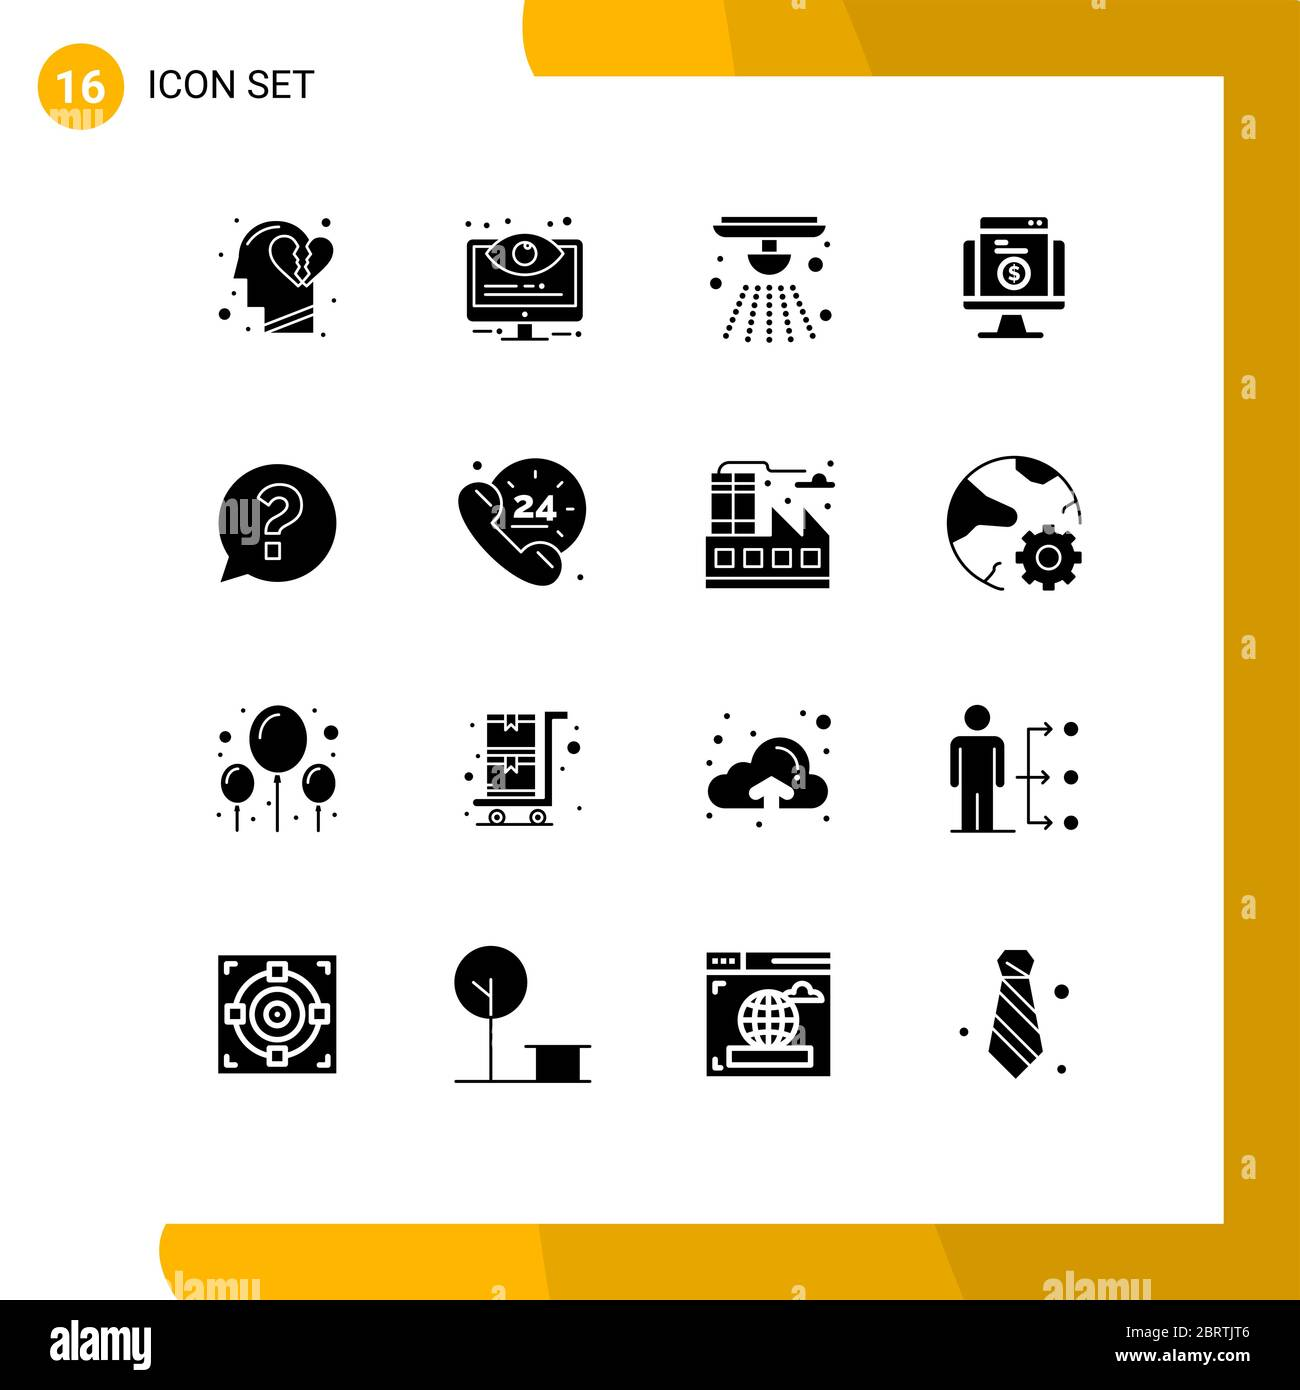 16 User Interface Solid Glyph Pack Of Modern Signs And Symbols Of Website Shopping System Online Fire Editable Vector Design Elements Stock Vector Image Art Alamy